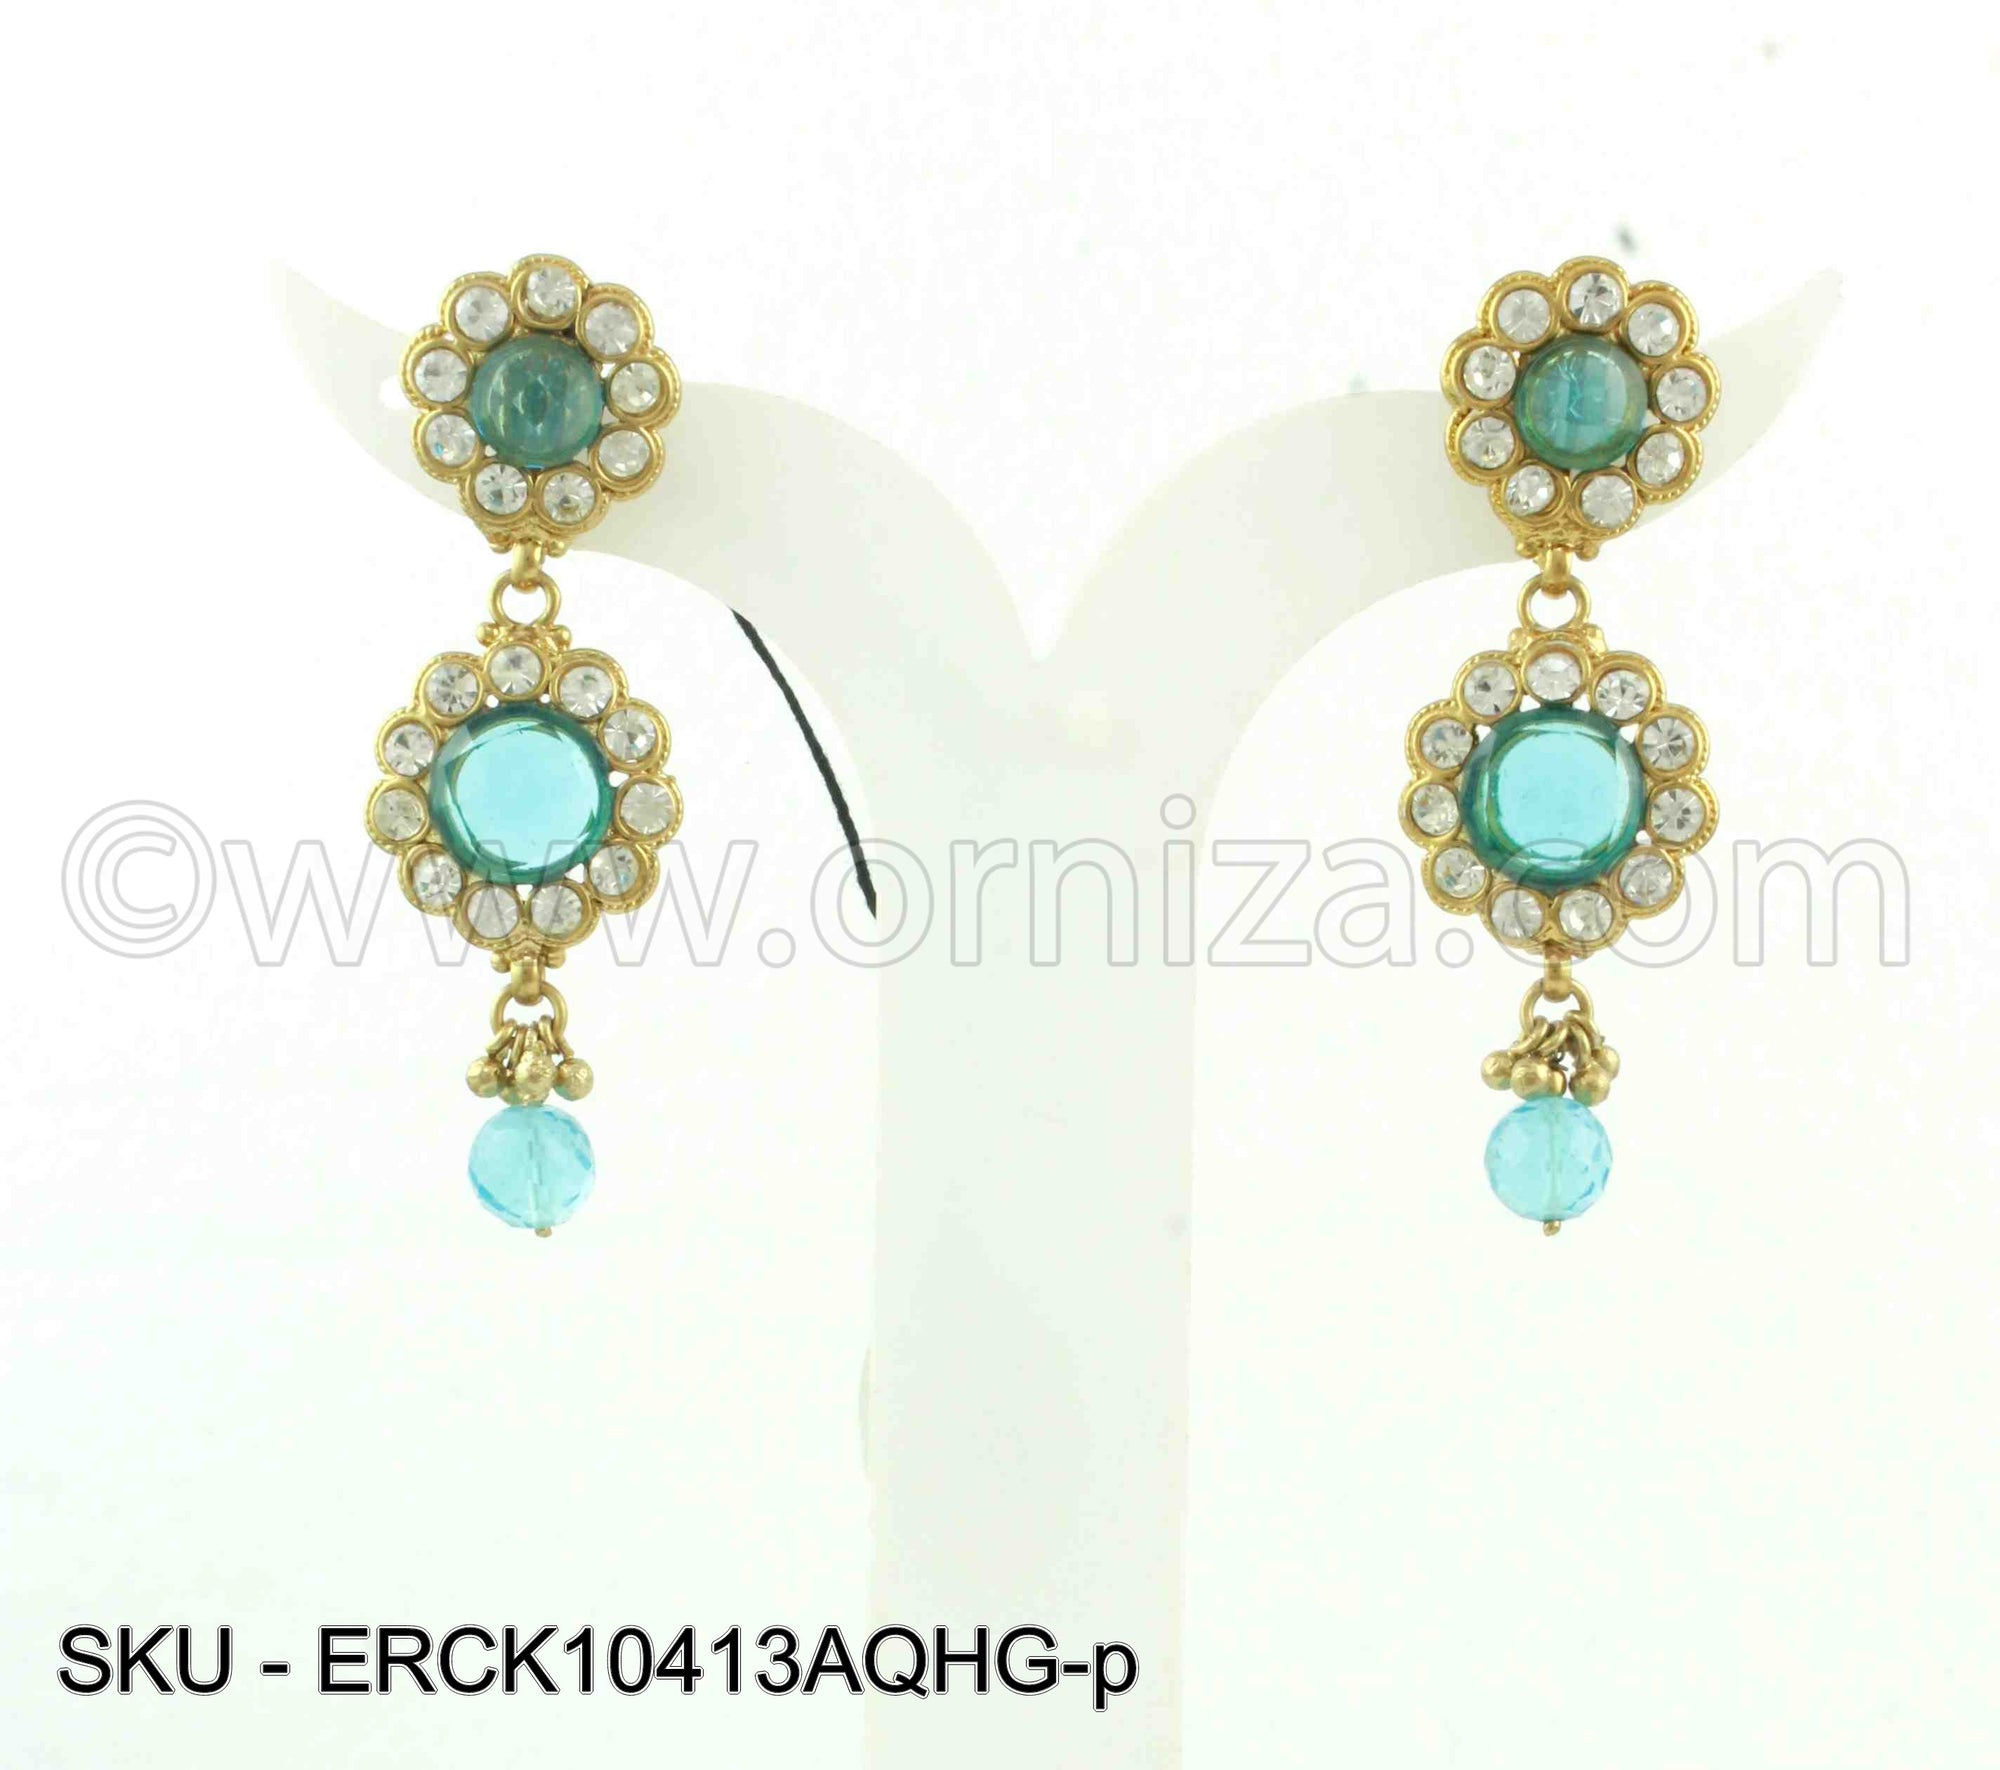 Aqua Blue Polki Stones Earrings